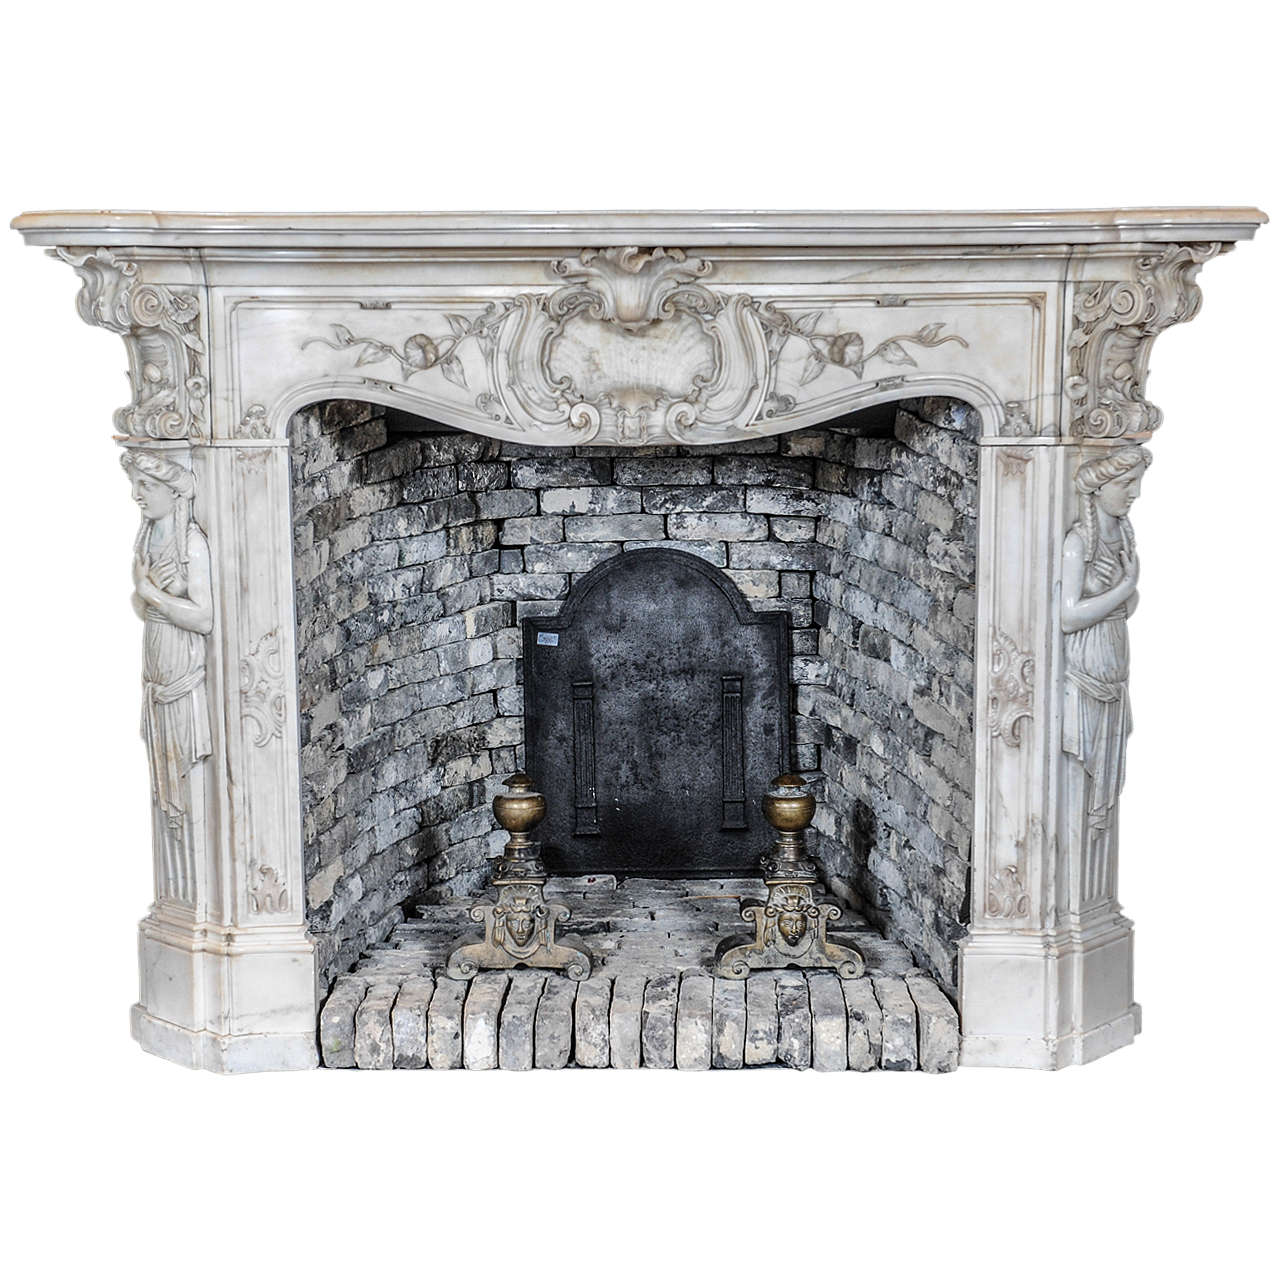 Carved 19th Century French Rococo Statuario Marble Fireplace or ...